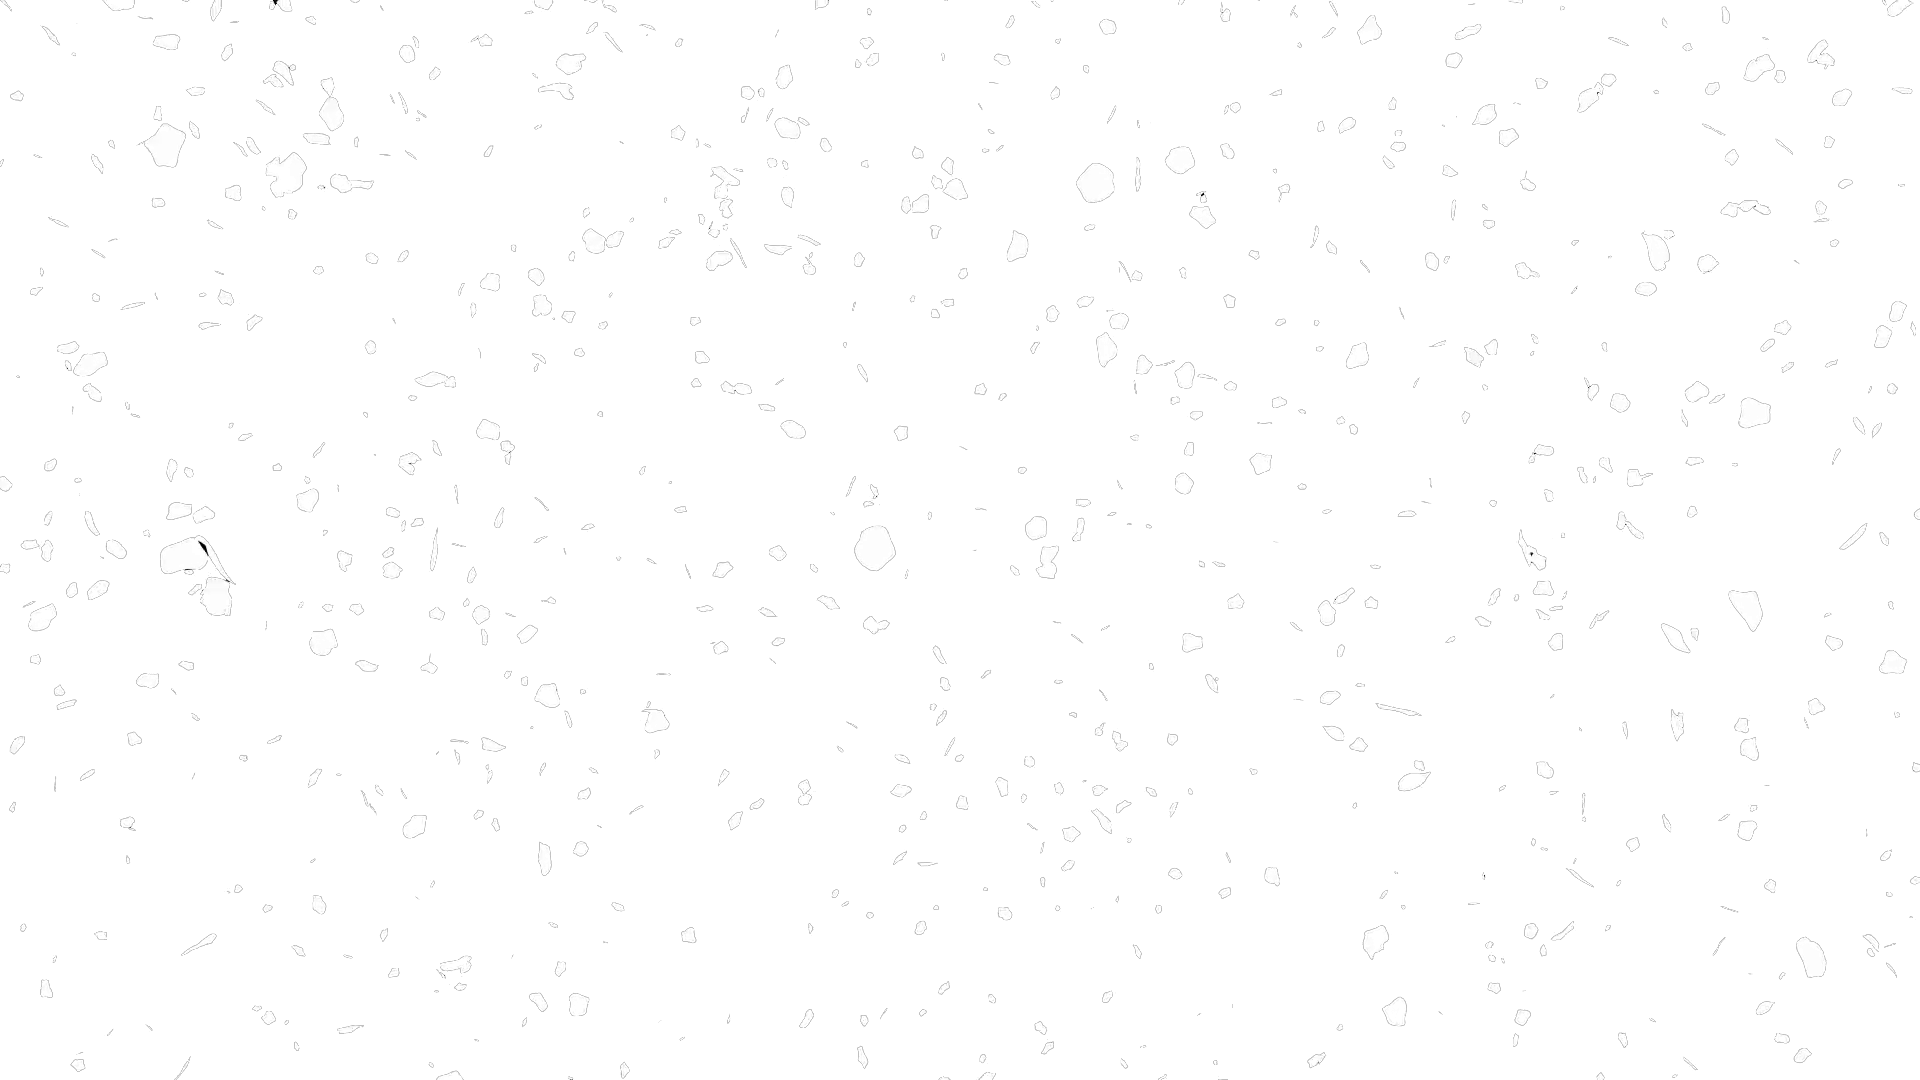 Snowfall png. Snow images transparent free